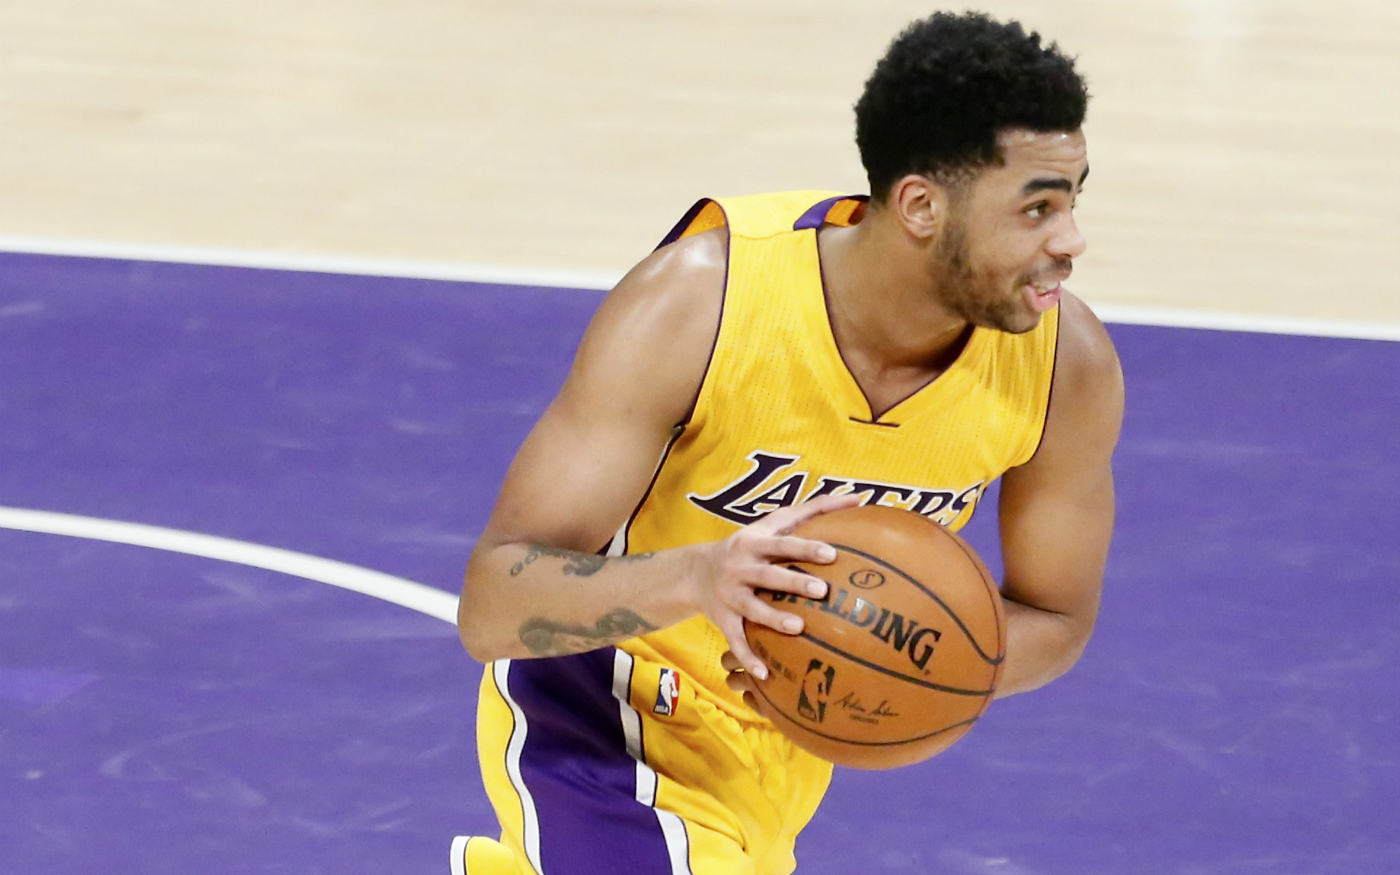 D'Angelo Russell n'a pas l'intention de forcer son retour